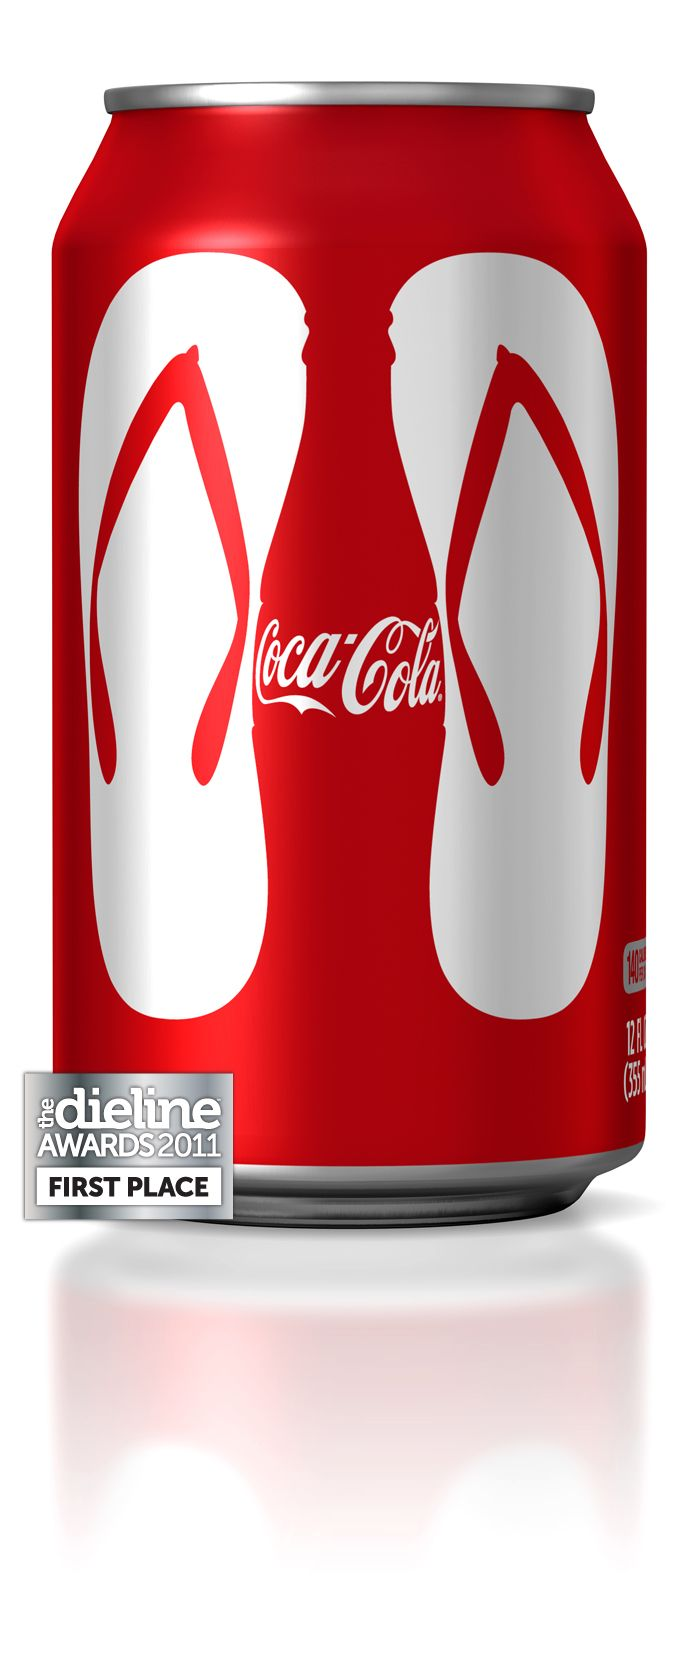 The Dieline Awards 2011 First Place / Coca-Cola Summer 2010